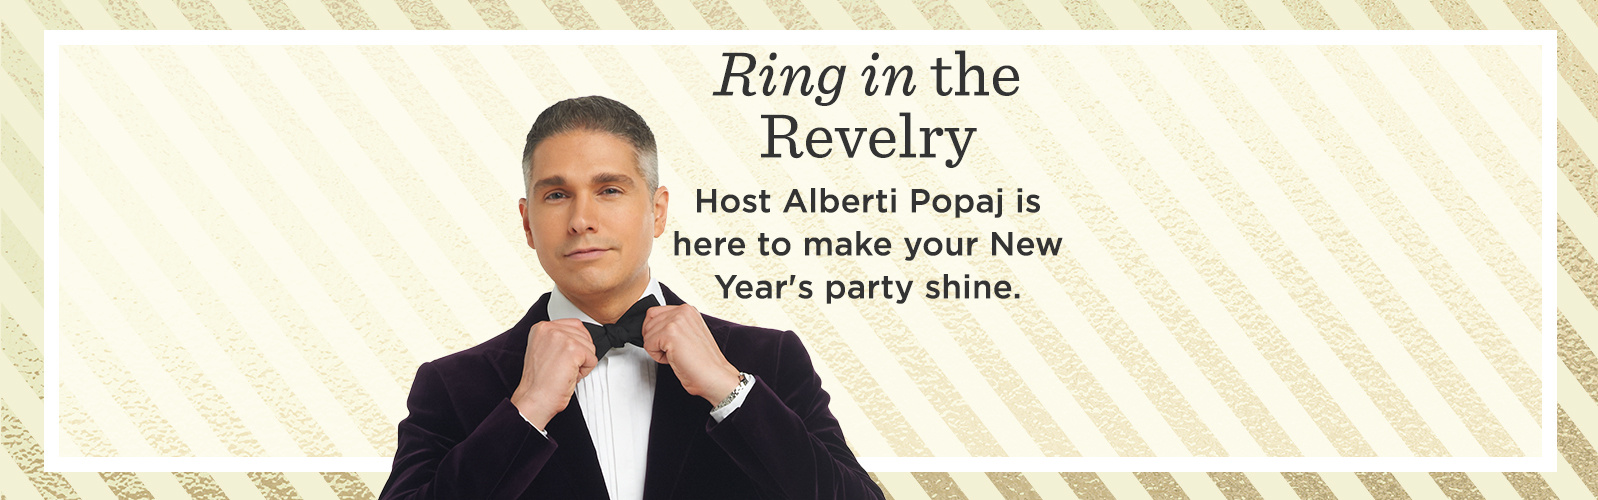 Ring in the Revelry — Host Alberti Popaj is here to make your New Year's party shine.